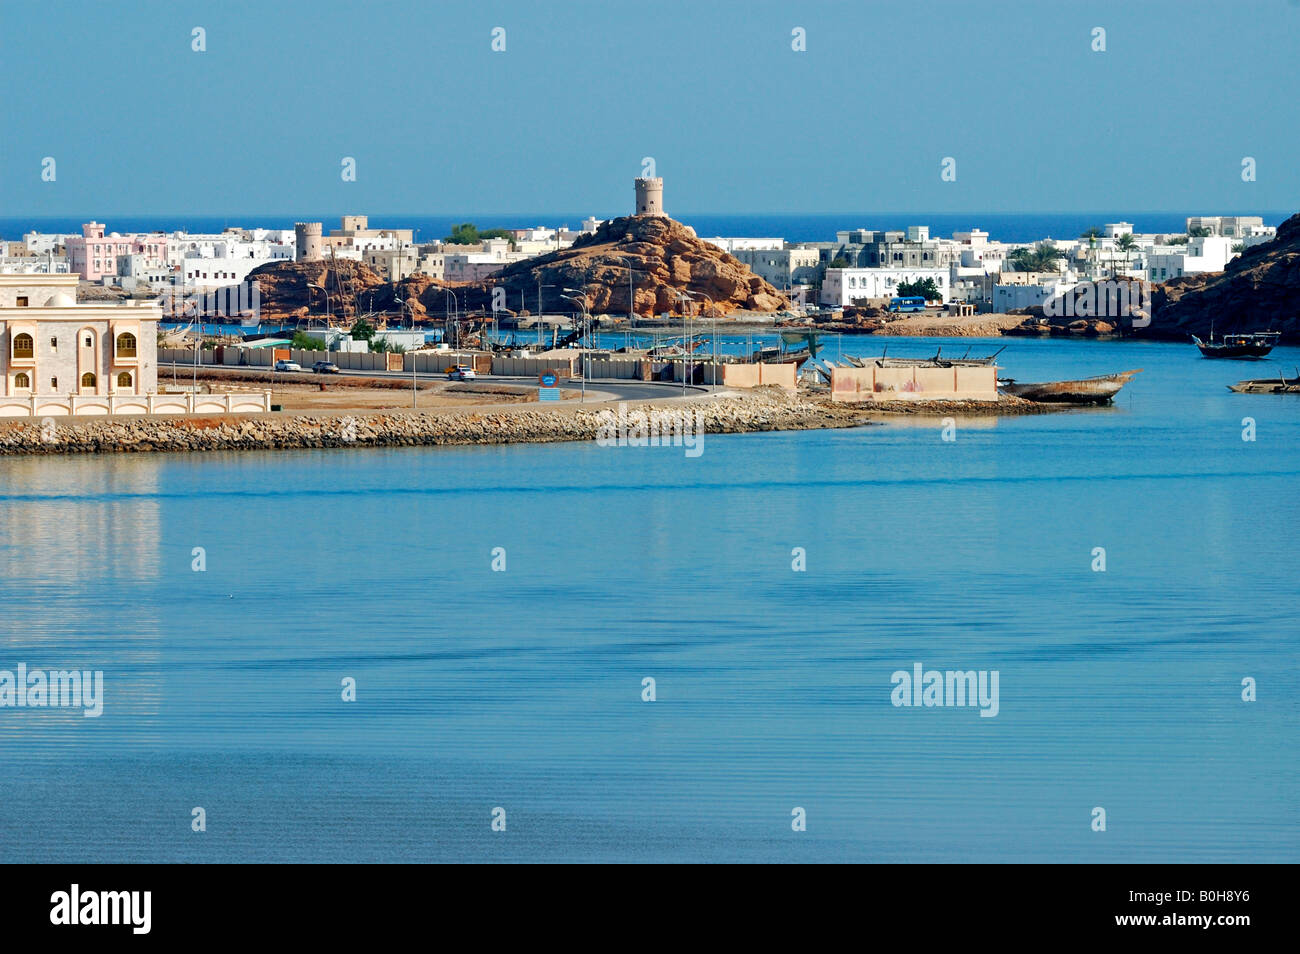 Two watchtowers built on rocky hills overlooking the harbour of Sur, Oman, Middle East Stock Photo